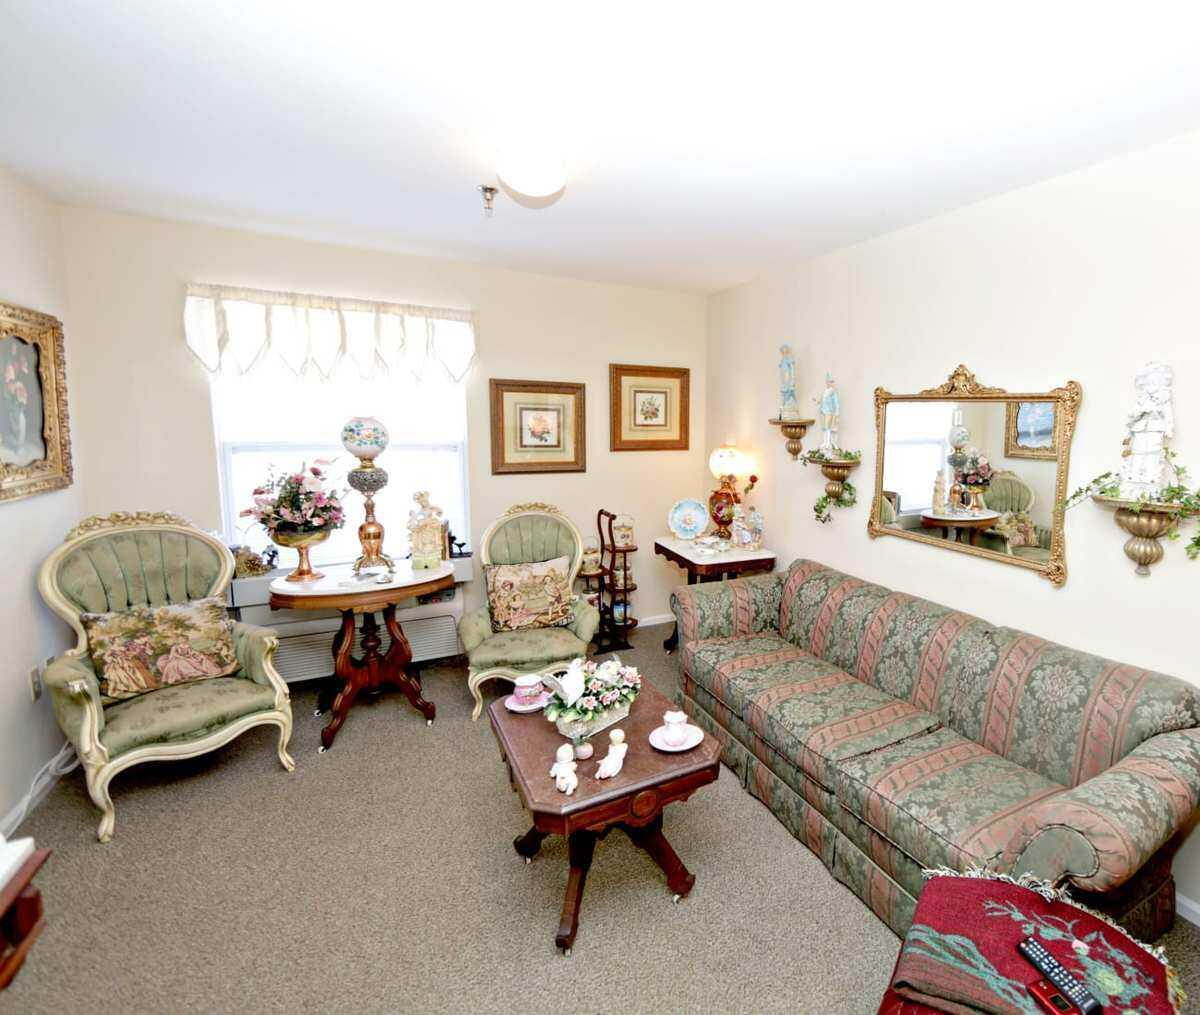 Photo of Providence Assisted Living of Senatobia, Assisted Living, Senatobia, MS 6